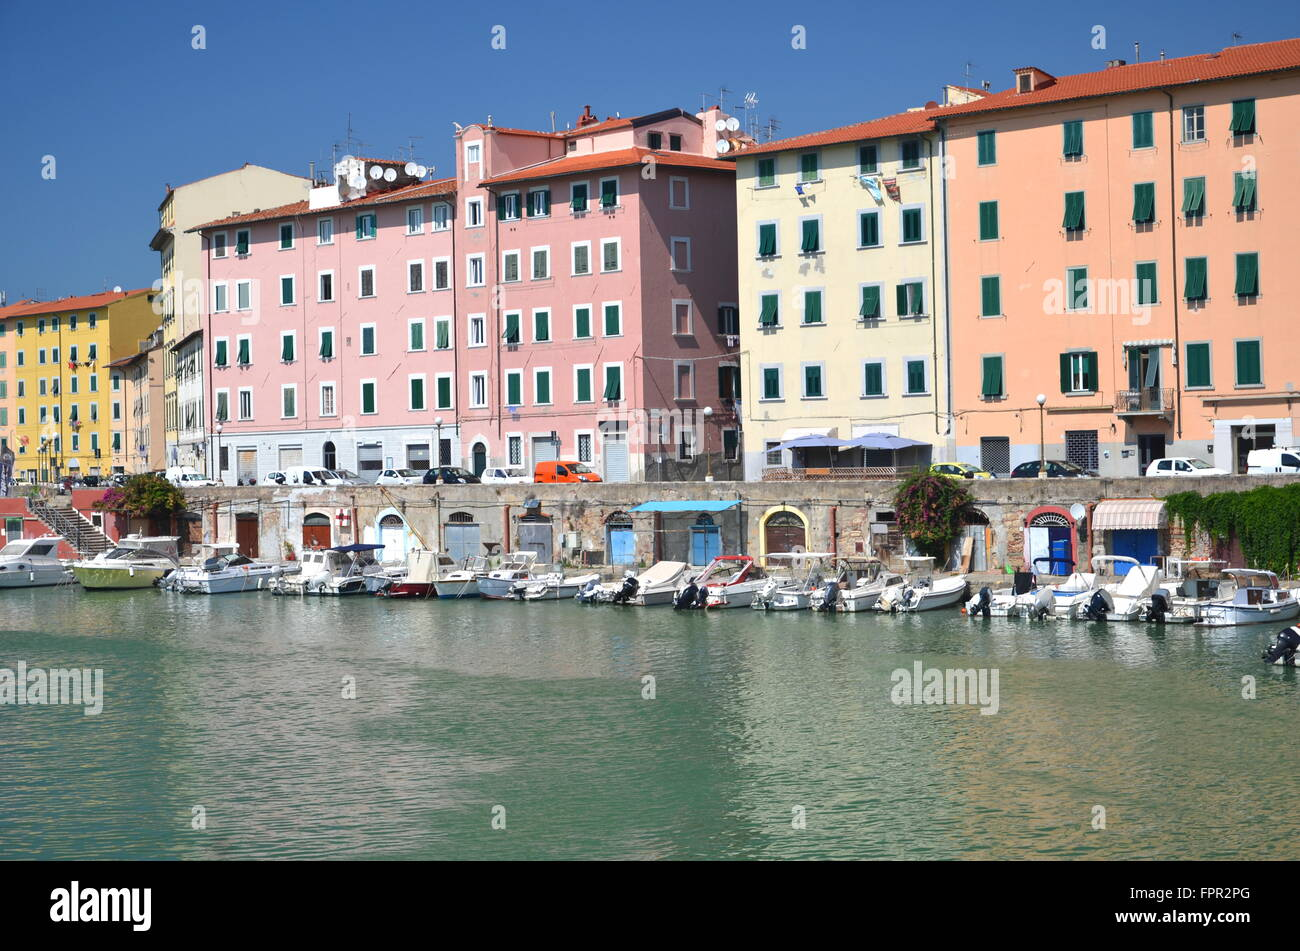 Picturesque view on boats in city channel in Livorno, Italy - Stock Image